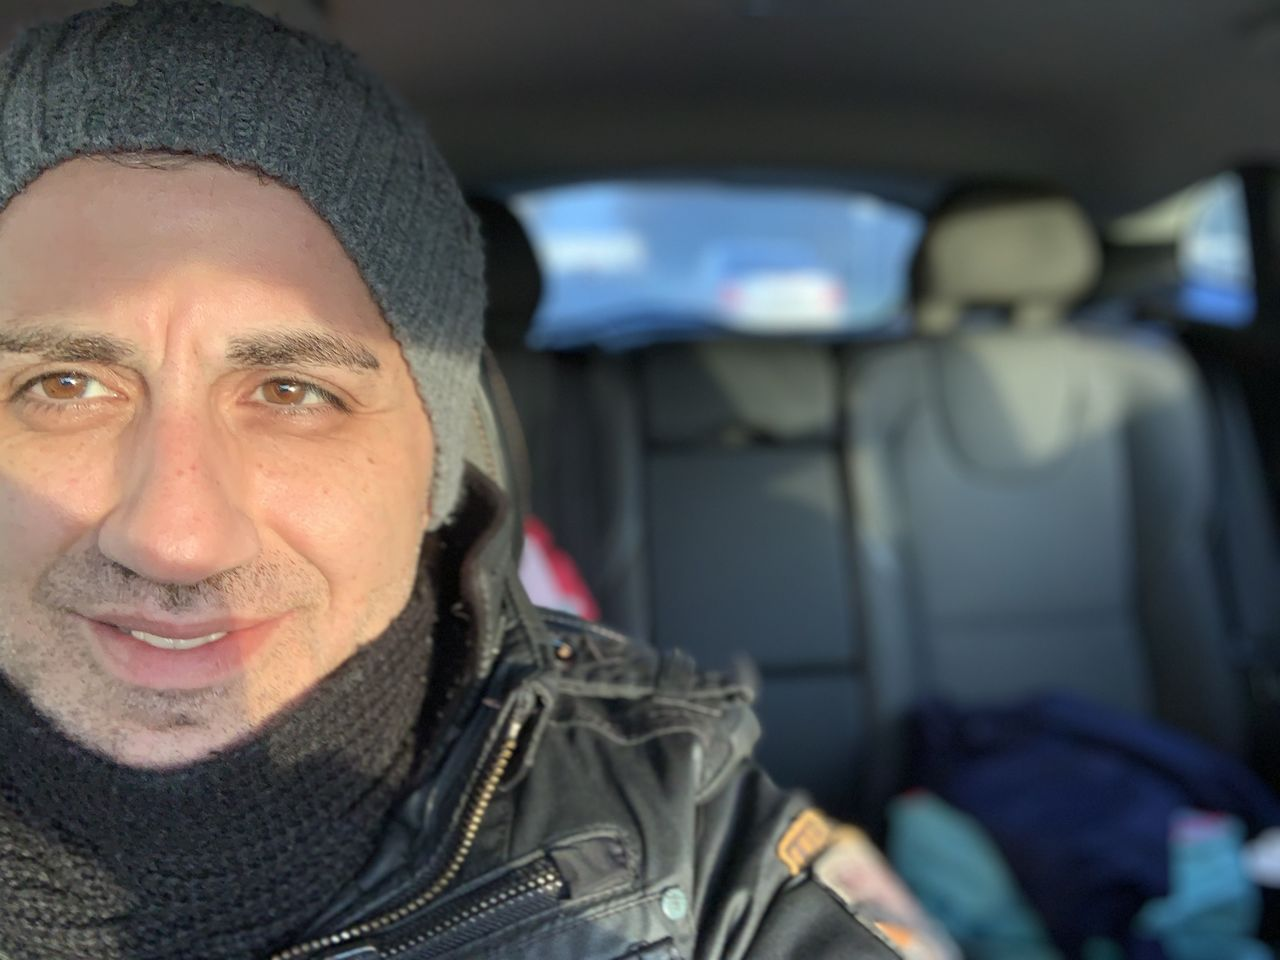 car, motor vehicle, portrait, mode of transportation, transportation, clothing, looking at camera, vehicle interior, land vehicle, winter, front view, people, warm clothing, car interior, travel, men, mid adult, headshot, scarf